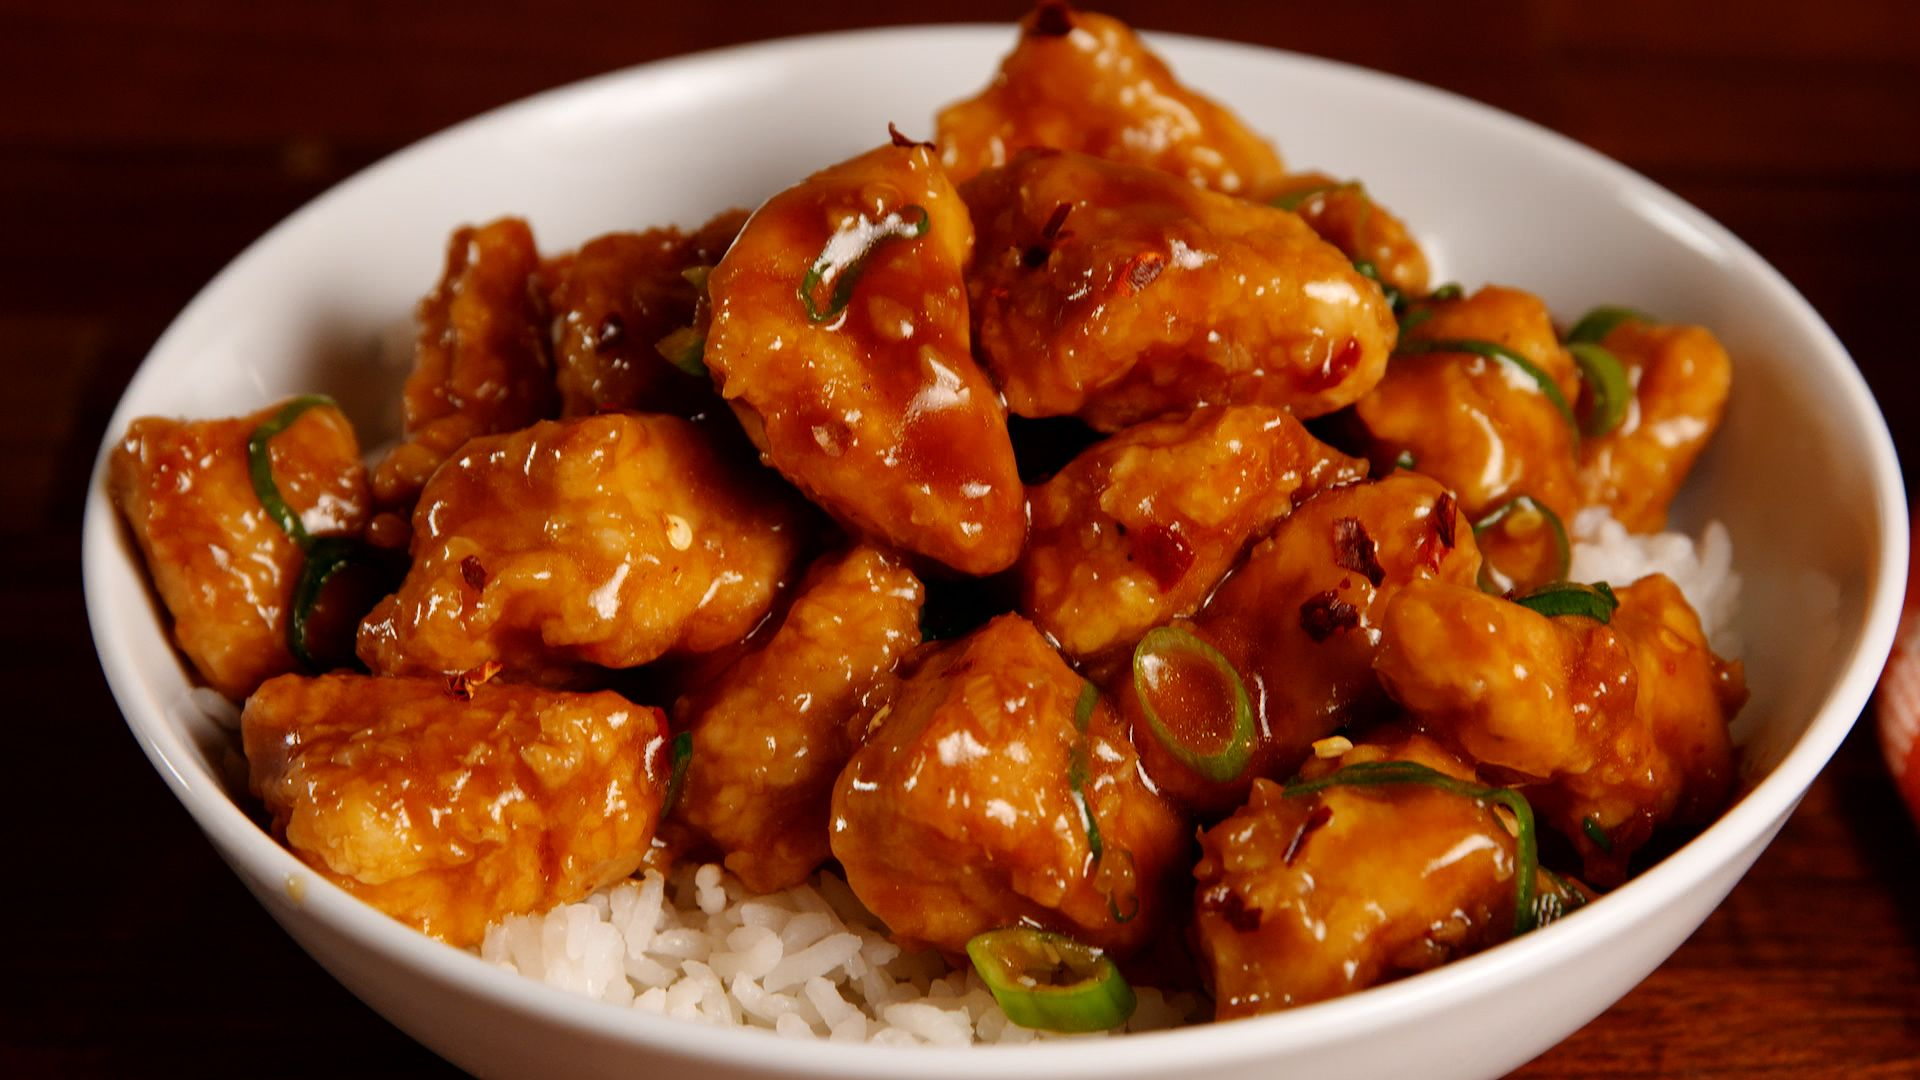 Best Sticky Orange Chicken Recipe How To Make Sticky Orange Chicken